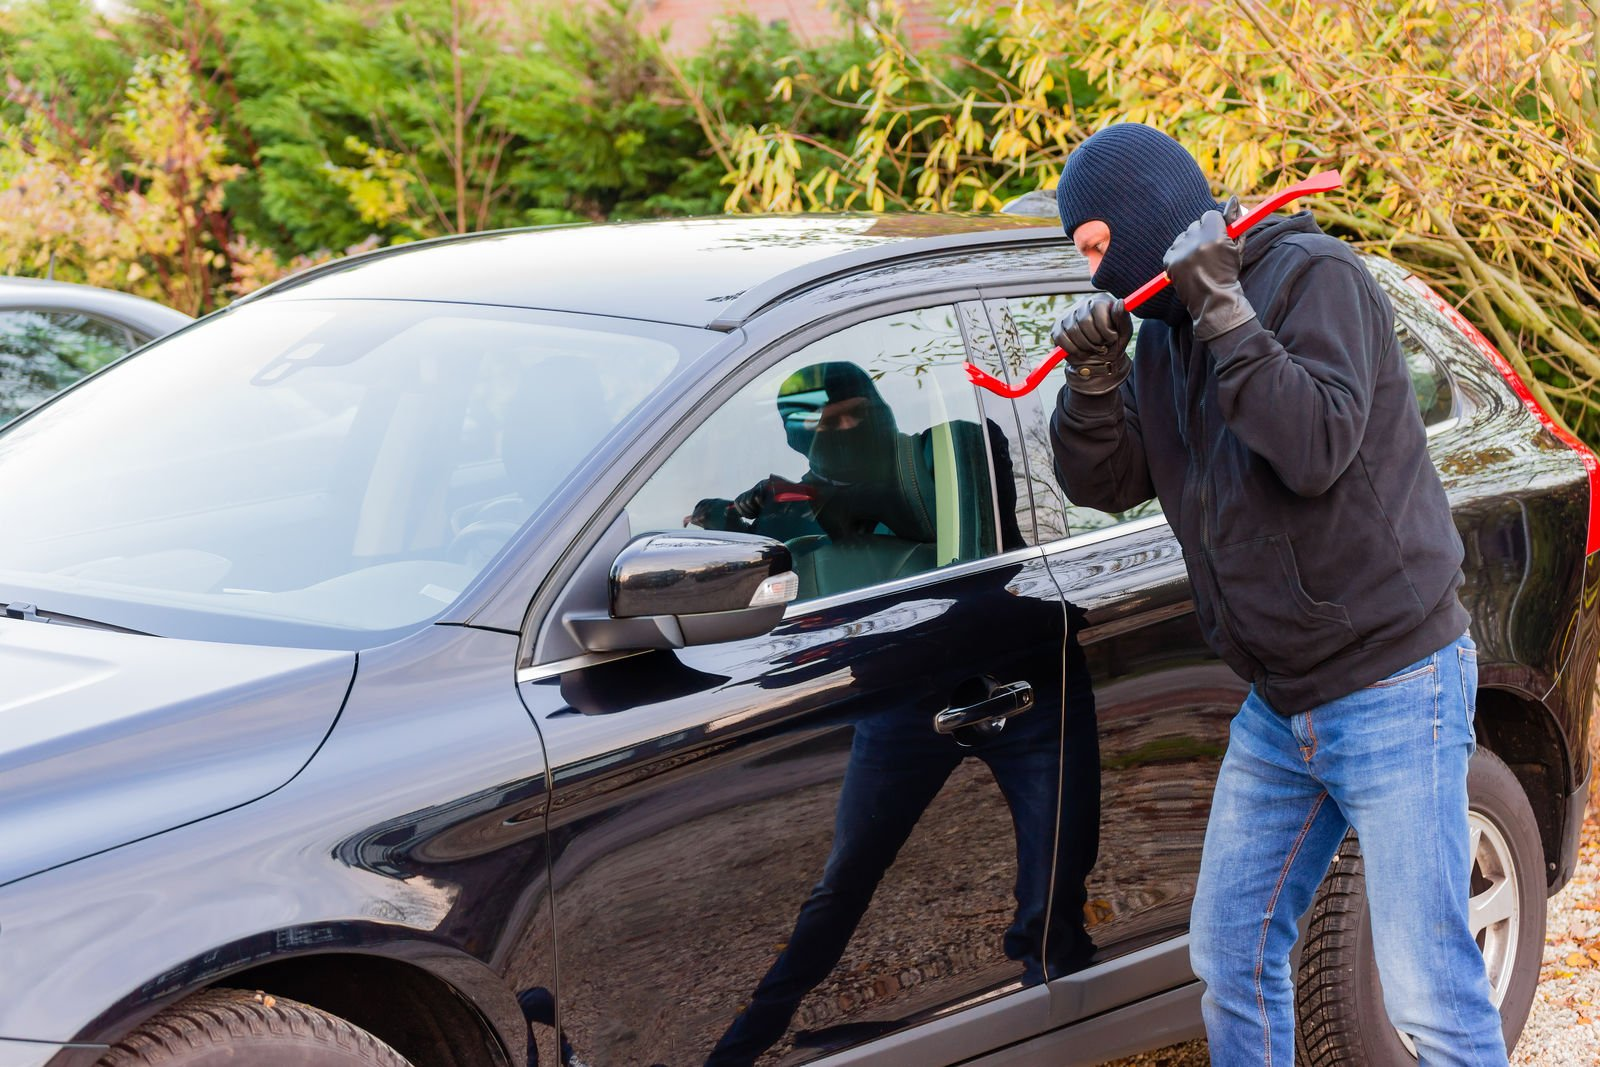 What does gap insurance cover when a car is stolen?